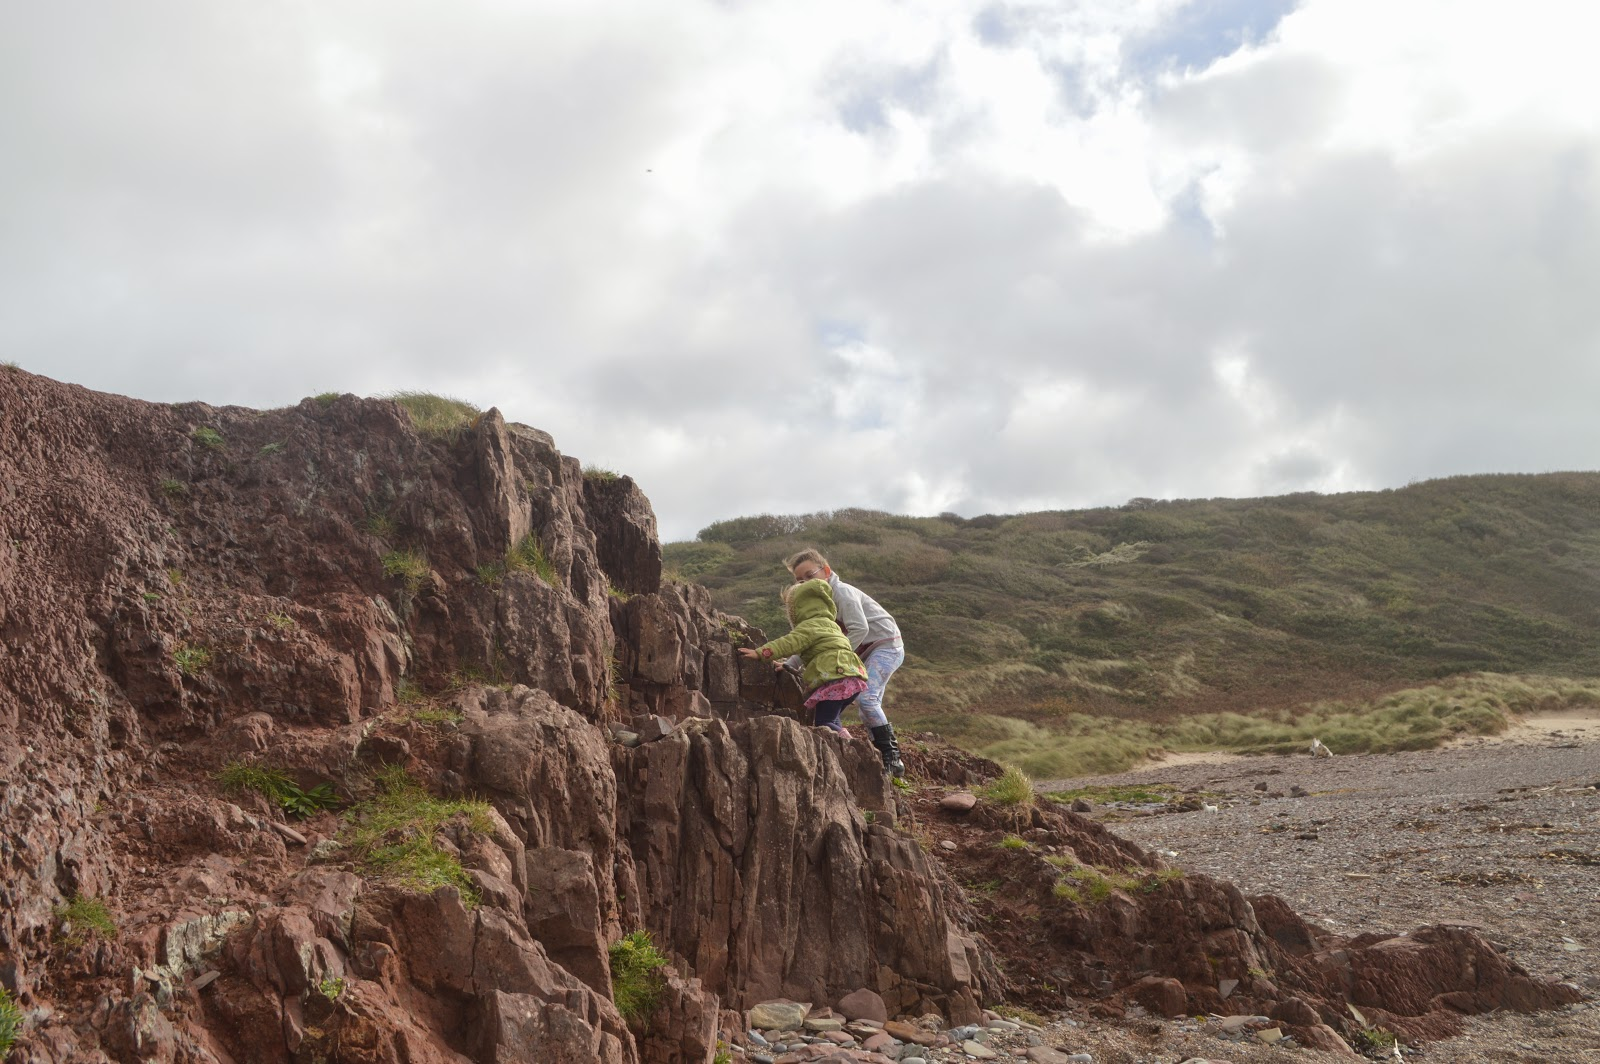 Girls Climbing Rocks at Manorbier Beach, Pembrokeshire, Wales